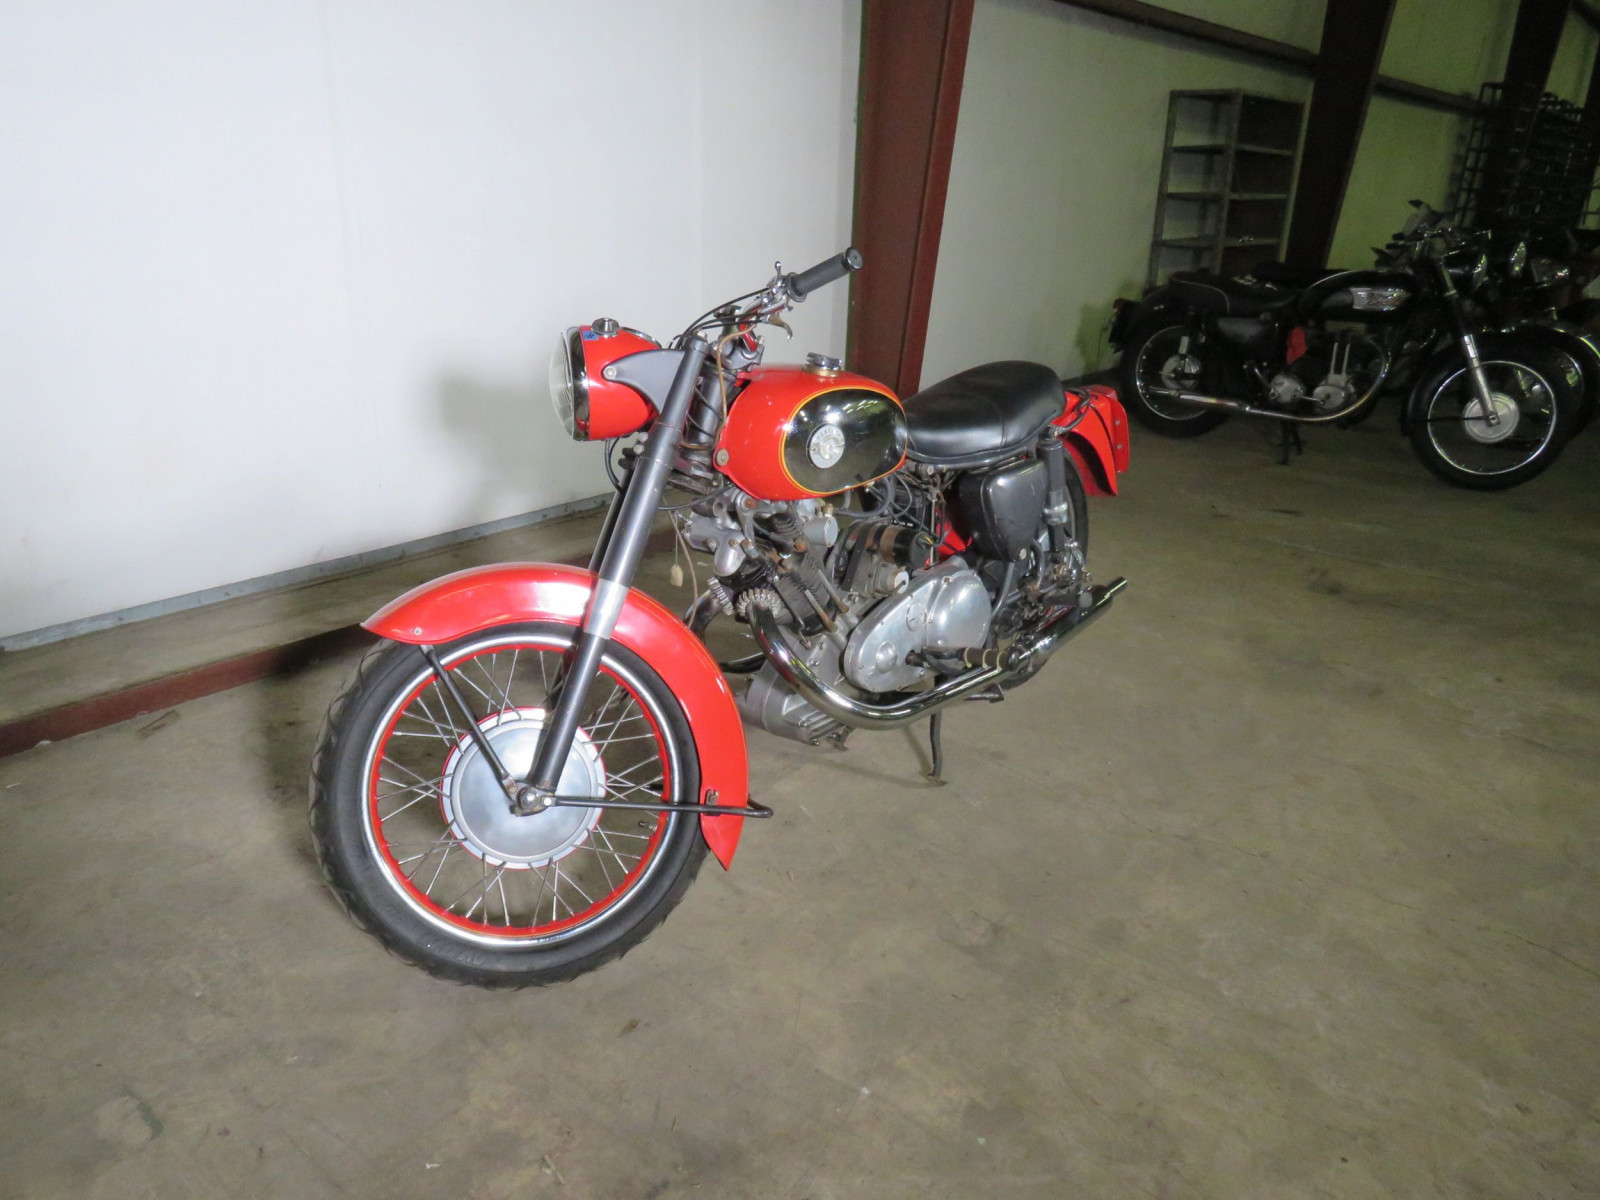 1965 Panther Model 120 Motorcycle - Image 1